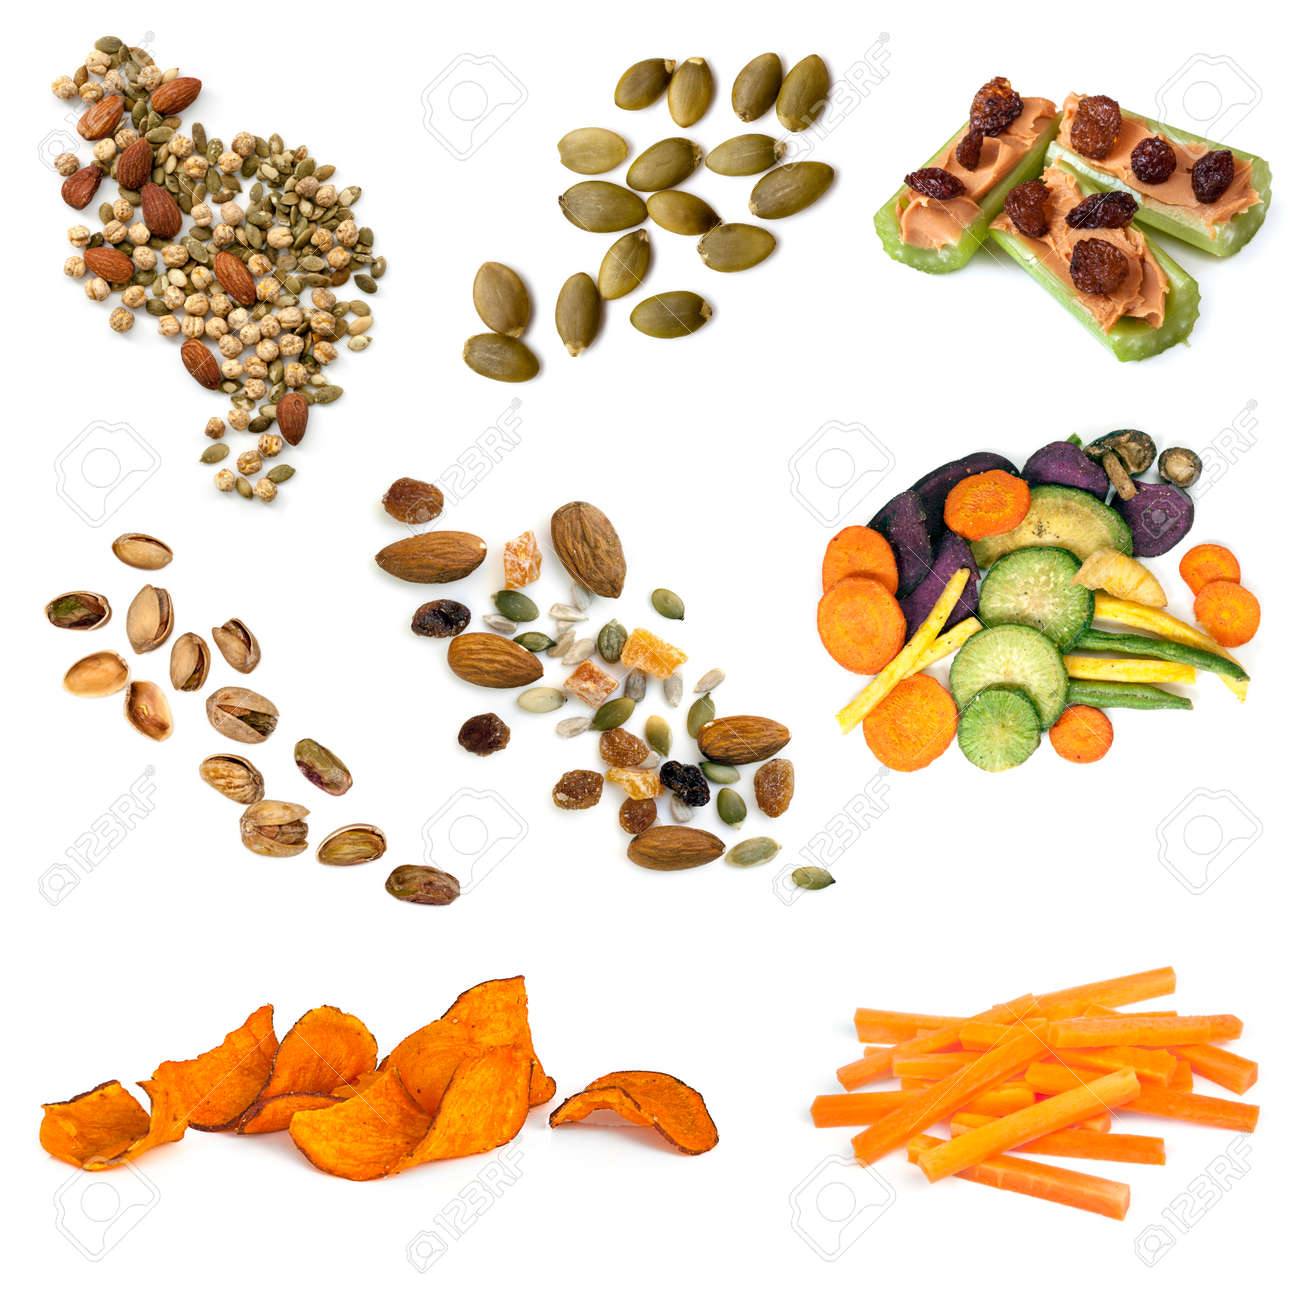 Healthy snacking collection isolated on white. Includes seeds, nuts, trail mix, sweet potato fries, vegetable crisps and carrot sticks. - 50492356